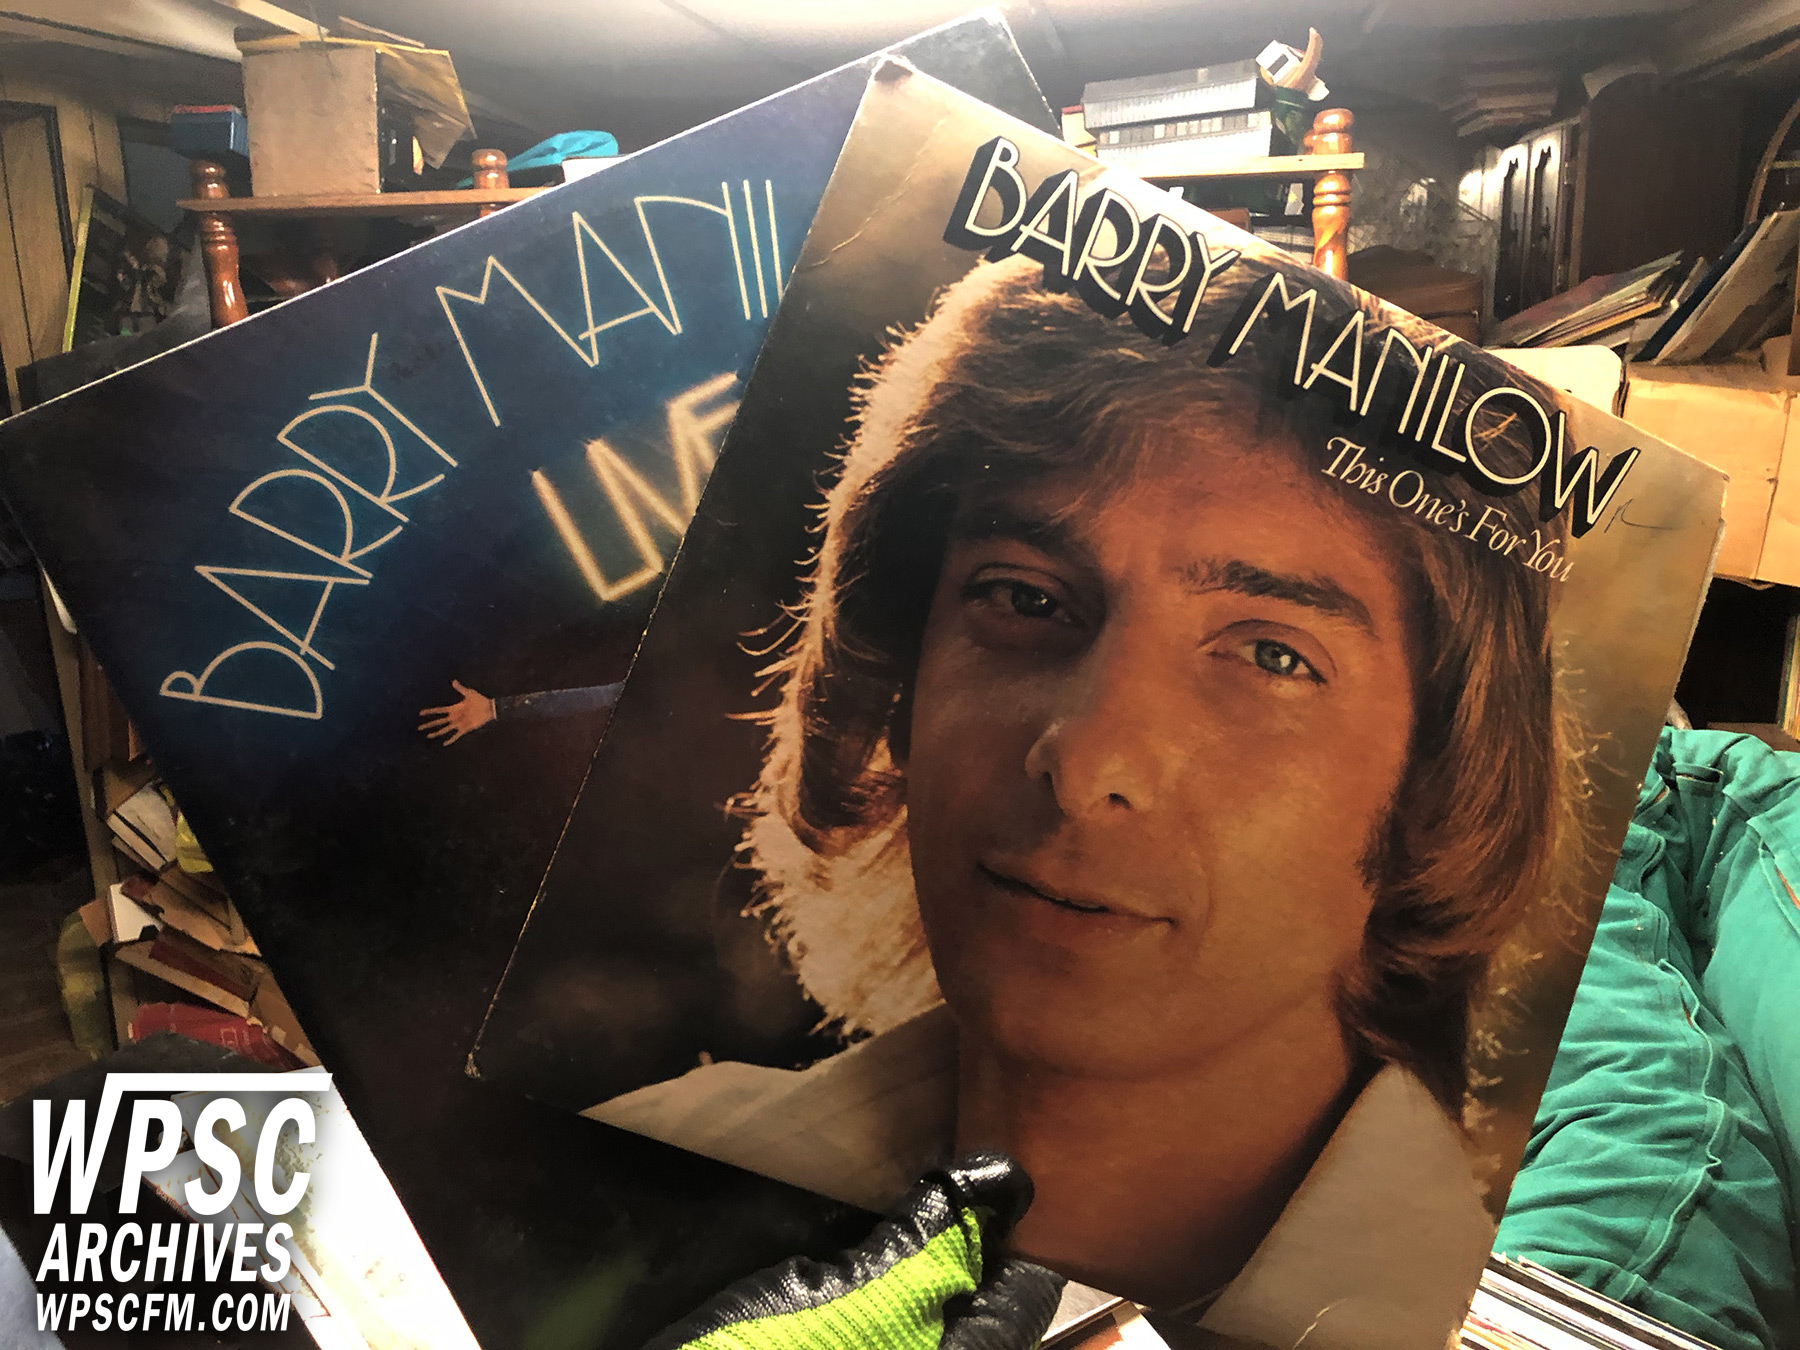 Manilow Lives!